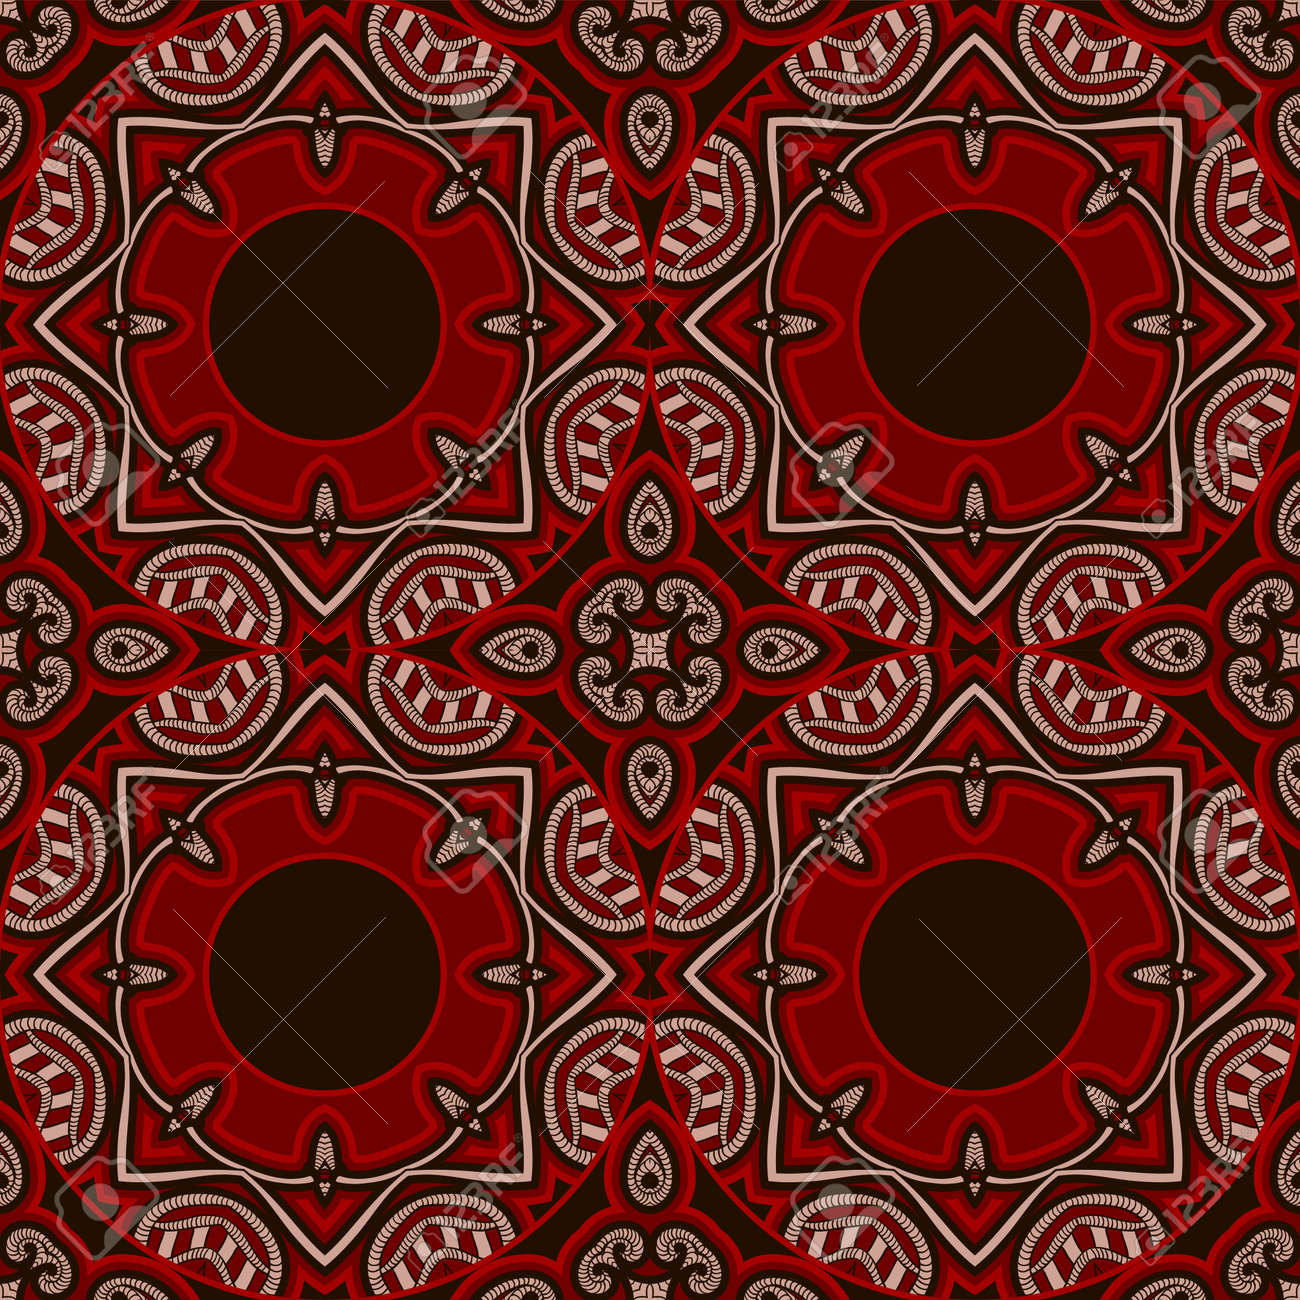 Patterned Floor Tile In Oriental Style Seamless Vector Background ...